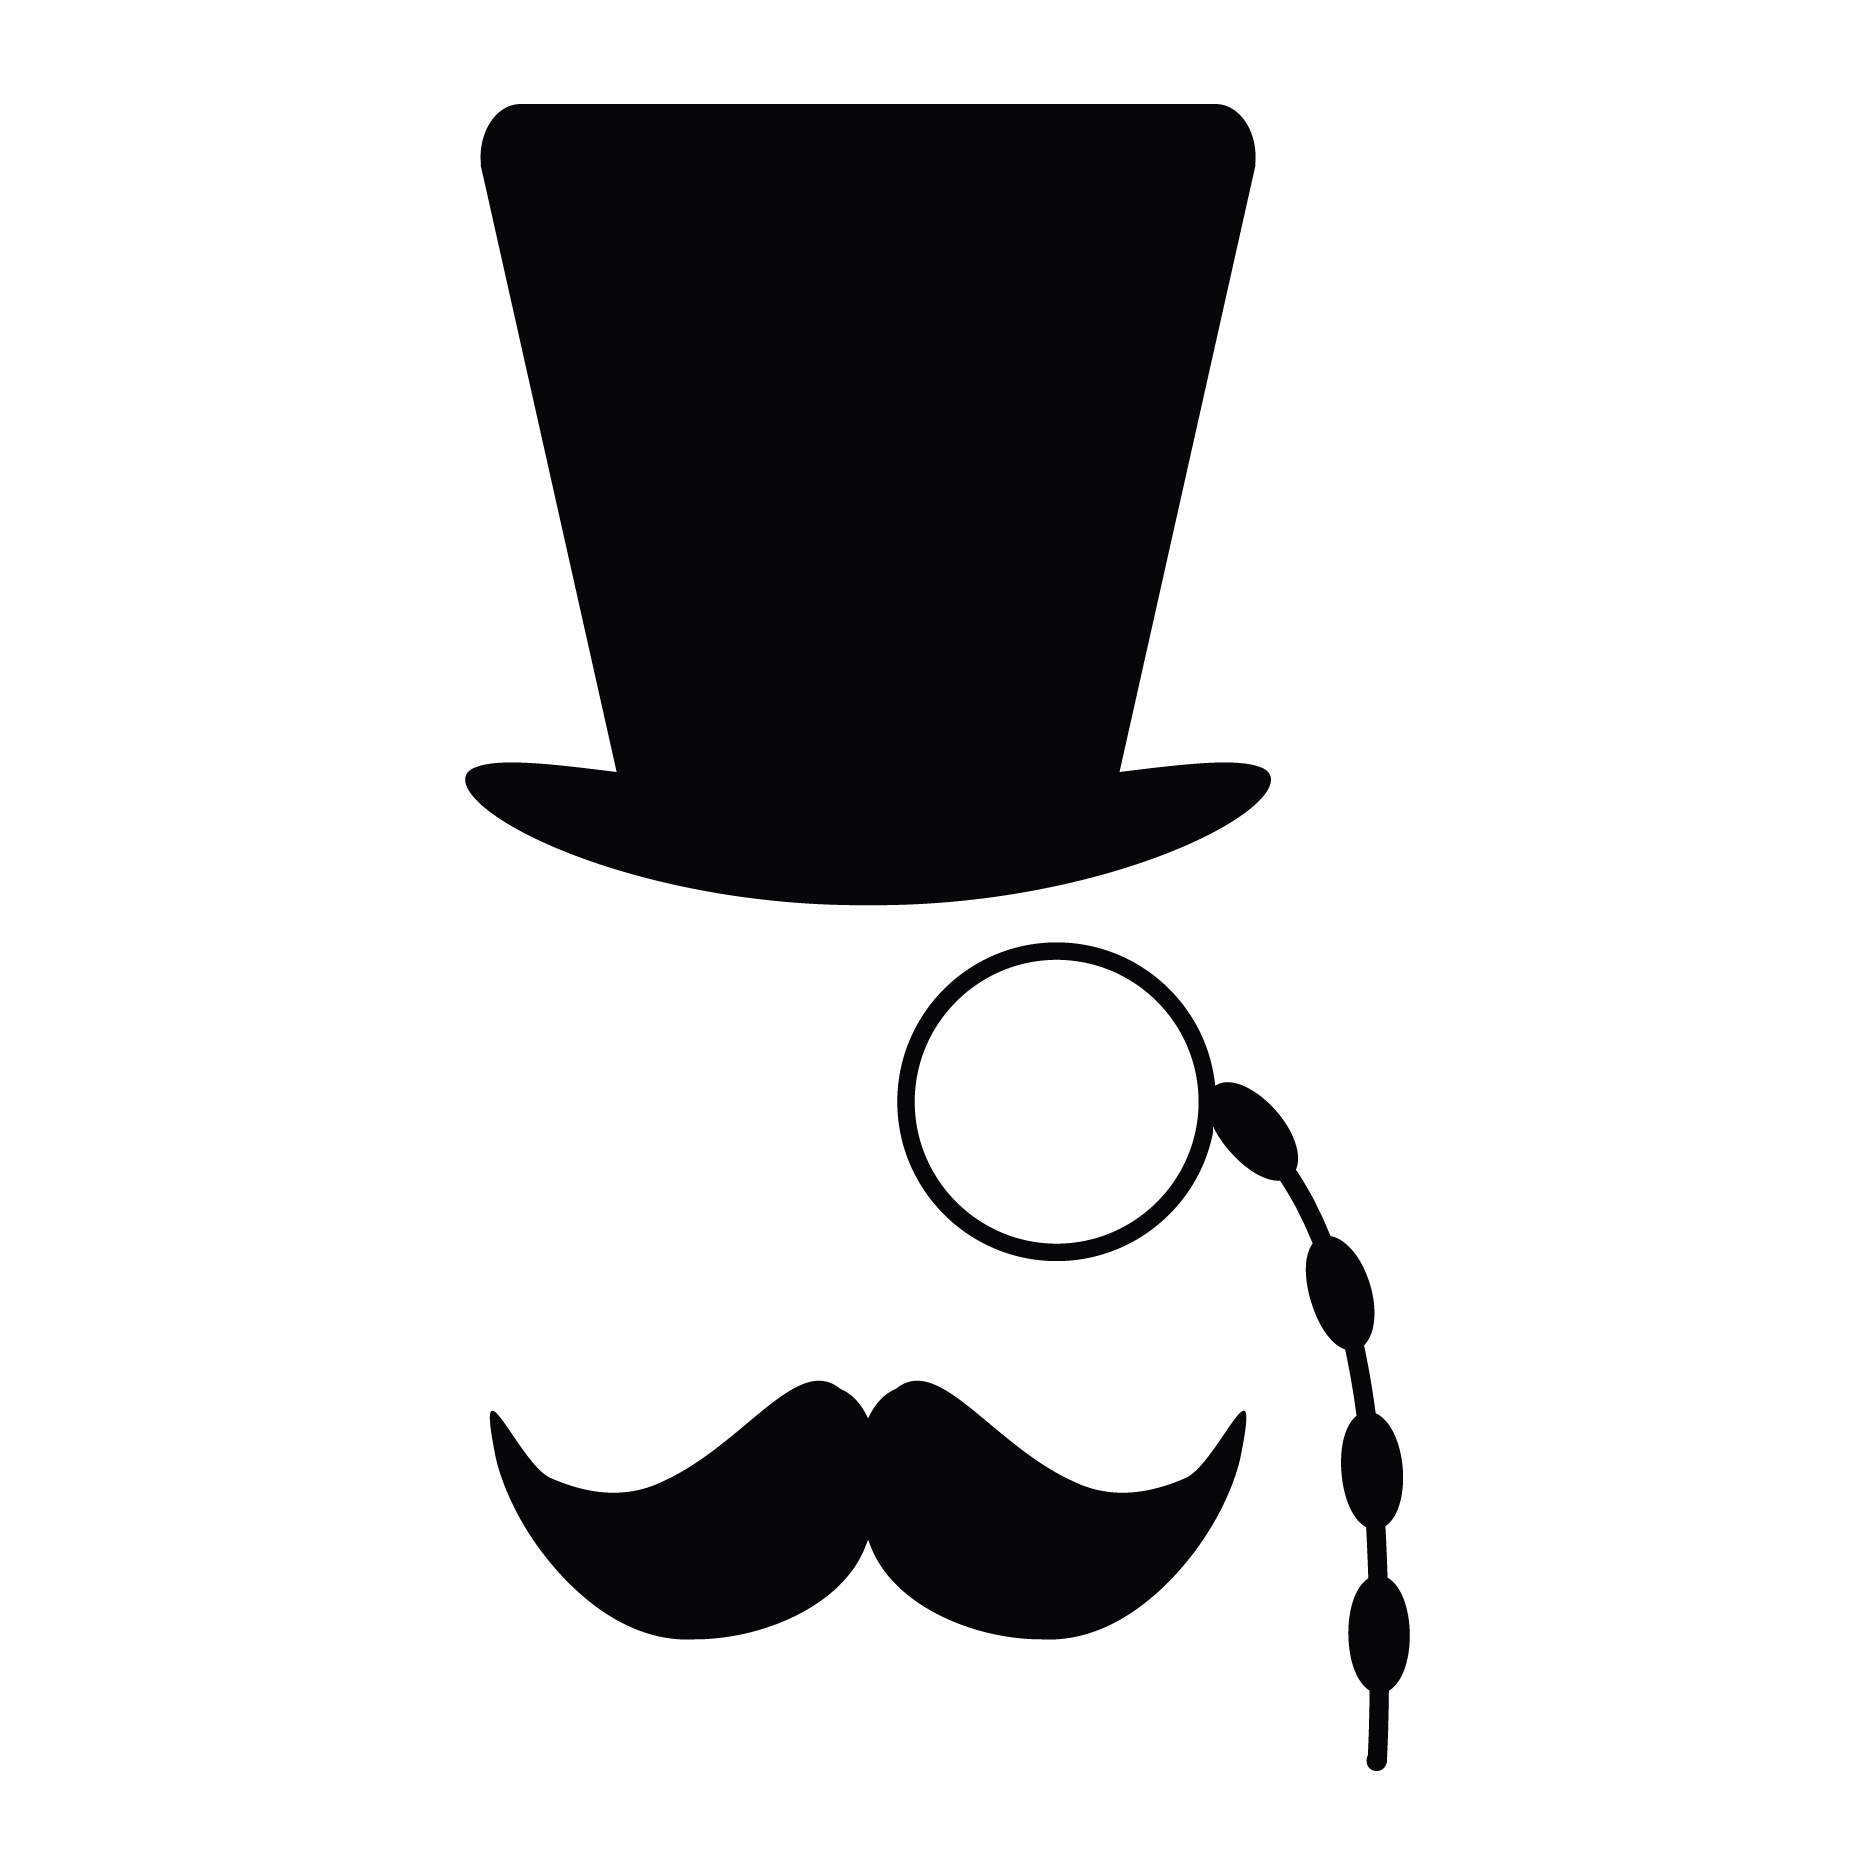 Monocle Gentleman Wall Quotes Wall Art Decal Wallquotes Com